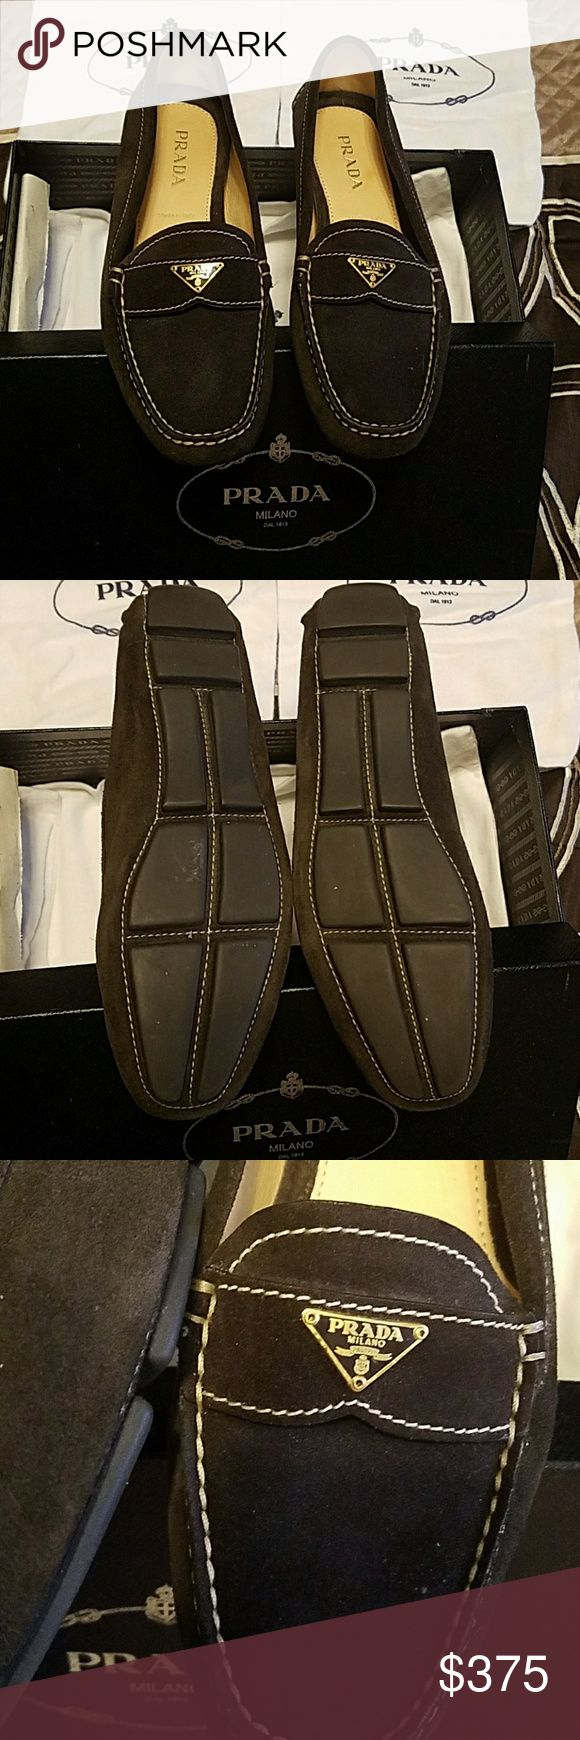 Prada brown suede loafers - 37 Brand new in original box-brown suede Prada women's loafers - size 37 European.  Made in Italy. Prada Shoes Flats & Loafers